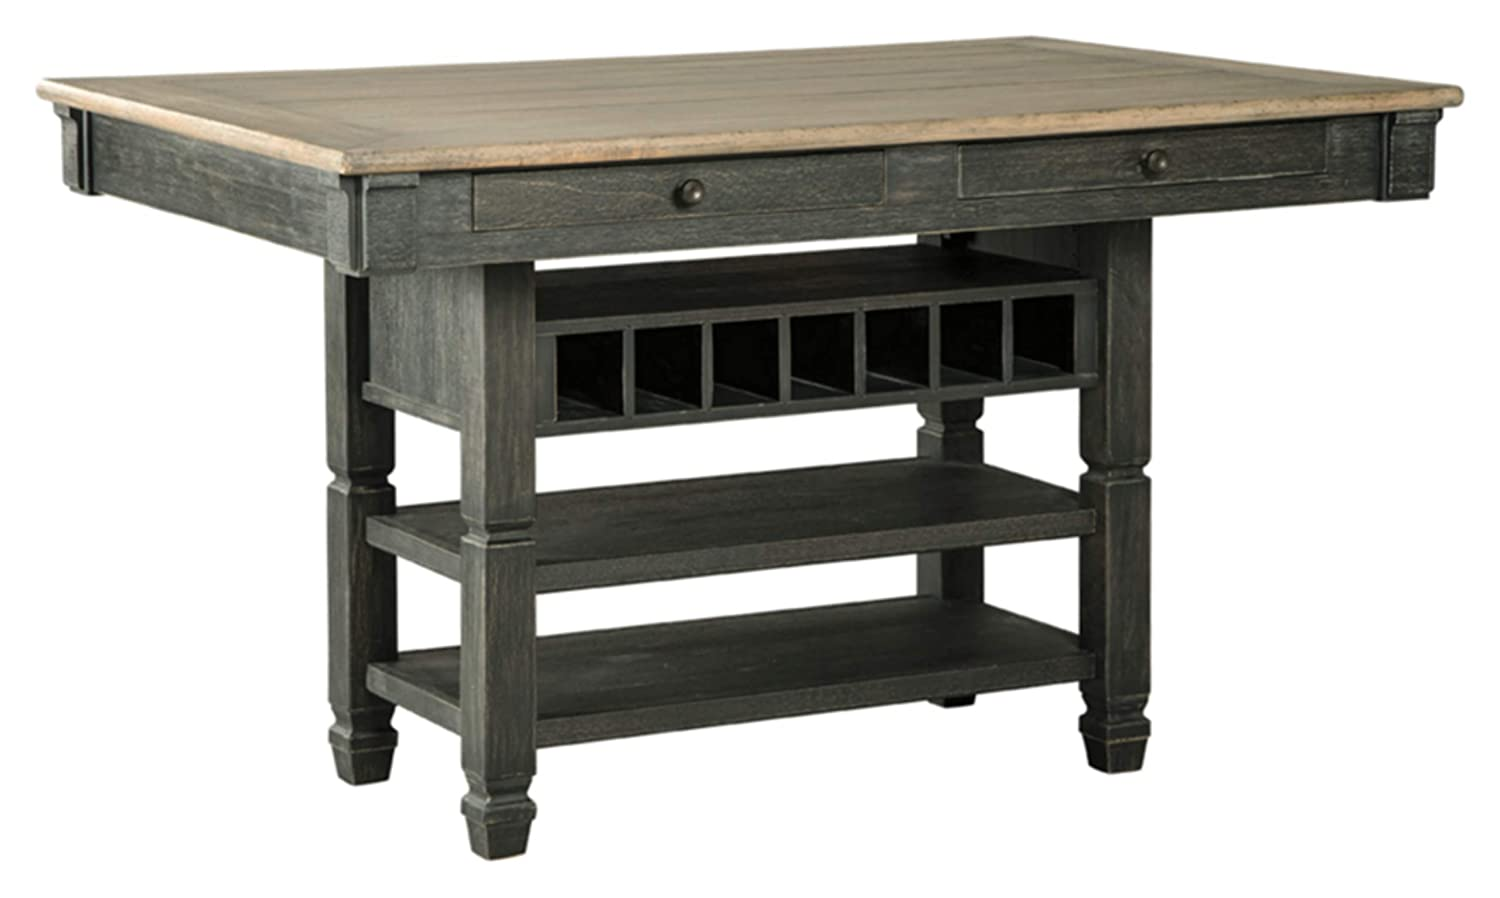 Signature Design By Ashley – Tyler Creek Counter Height Dining Room Table – Black Gray